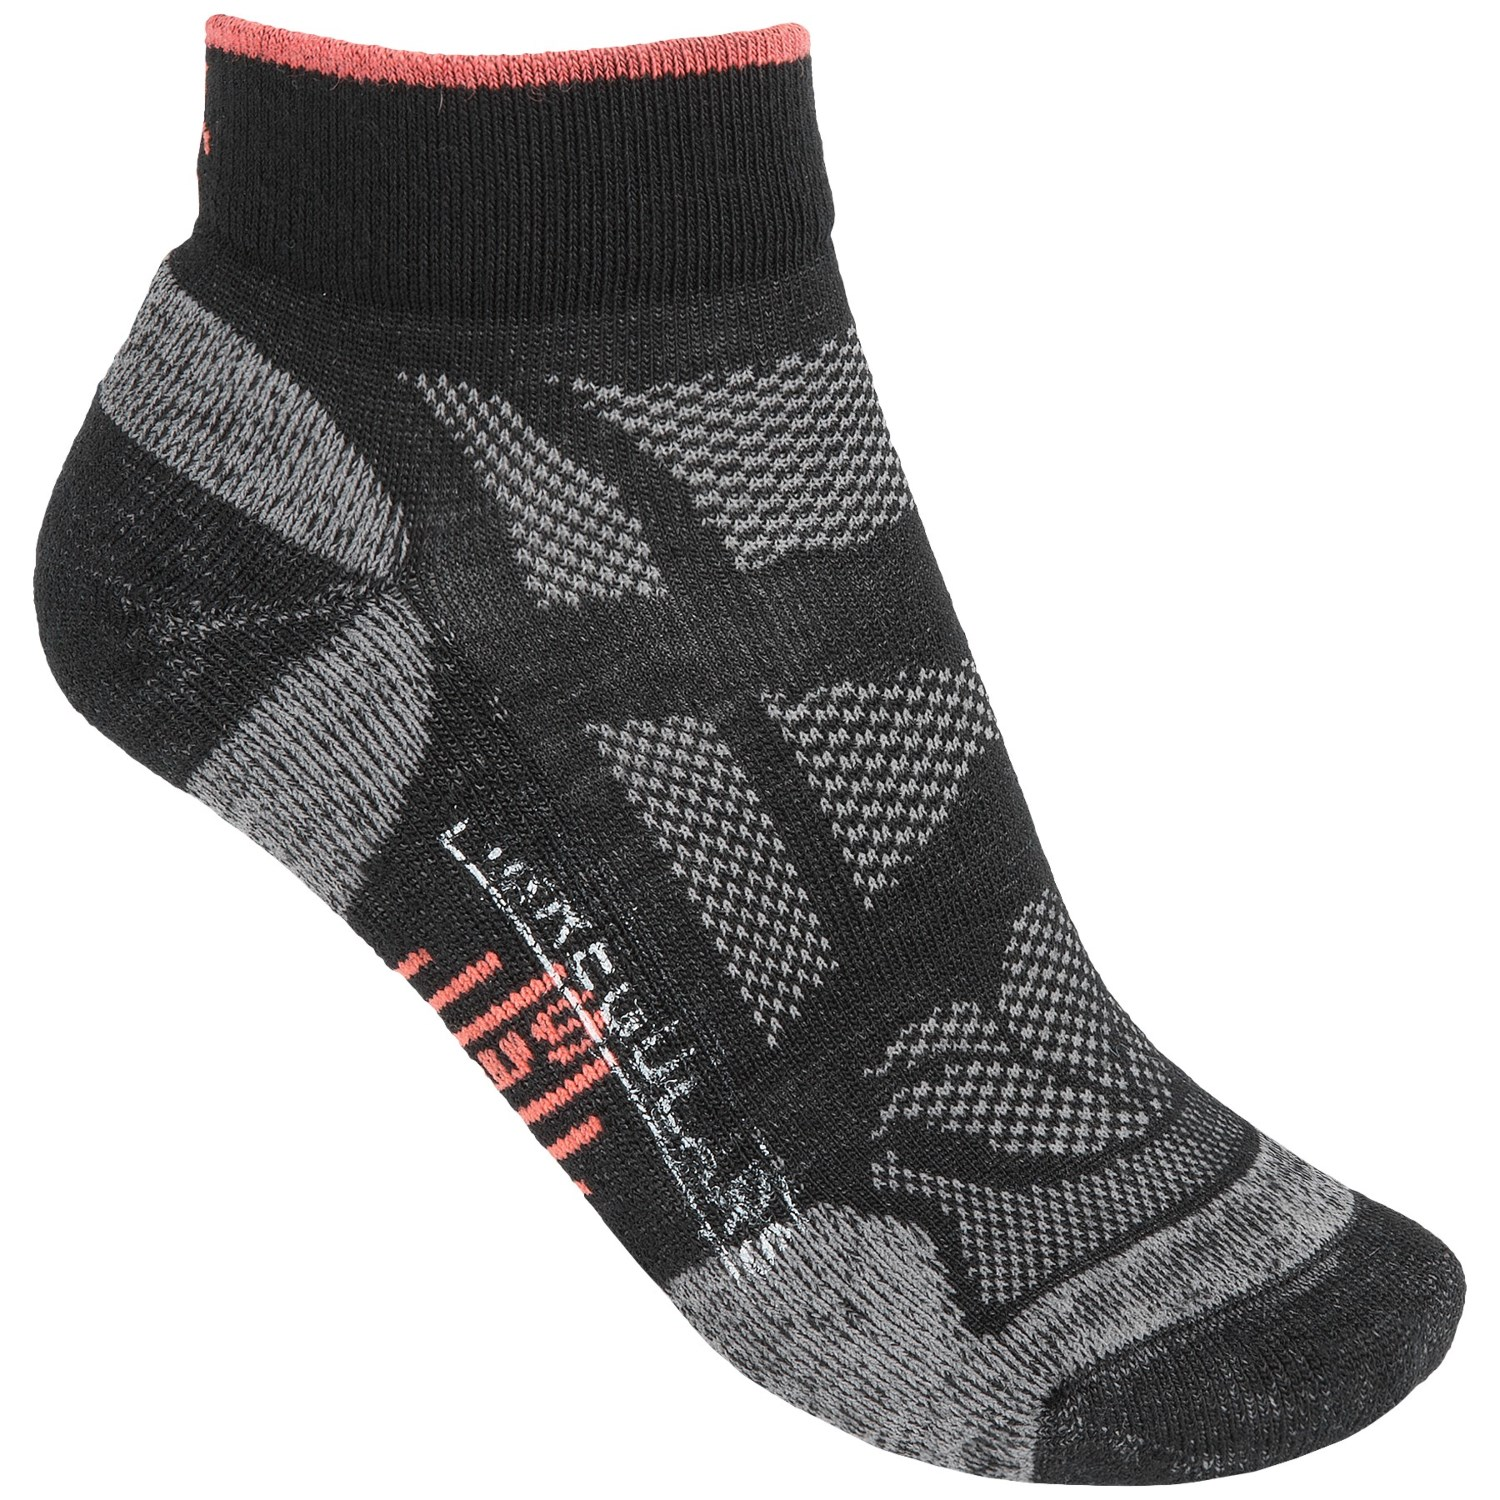 smartwool outdoor light mini sport socks for women